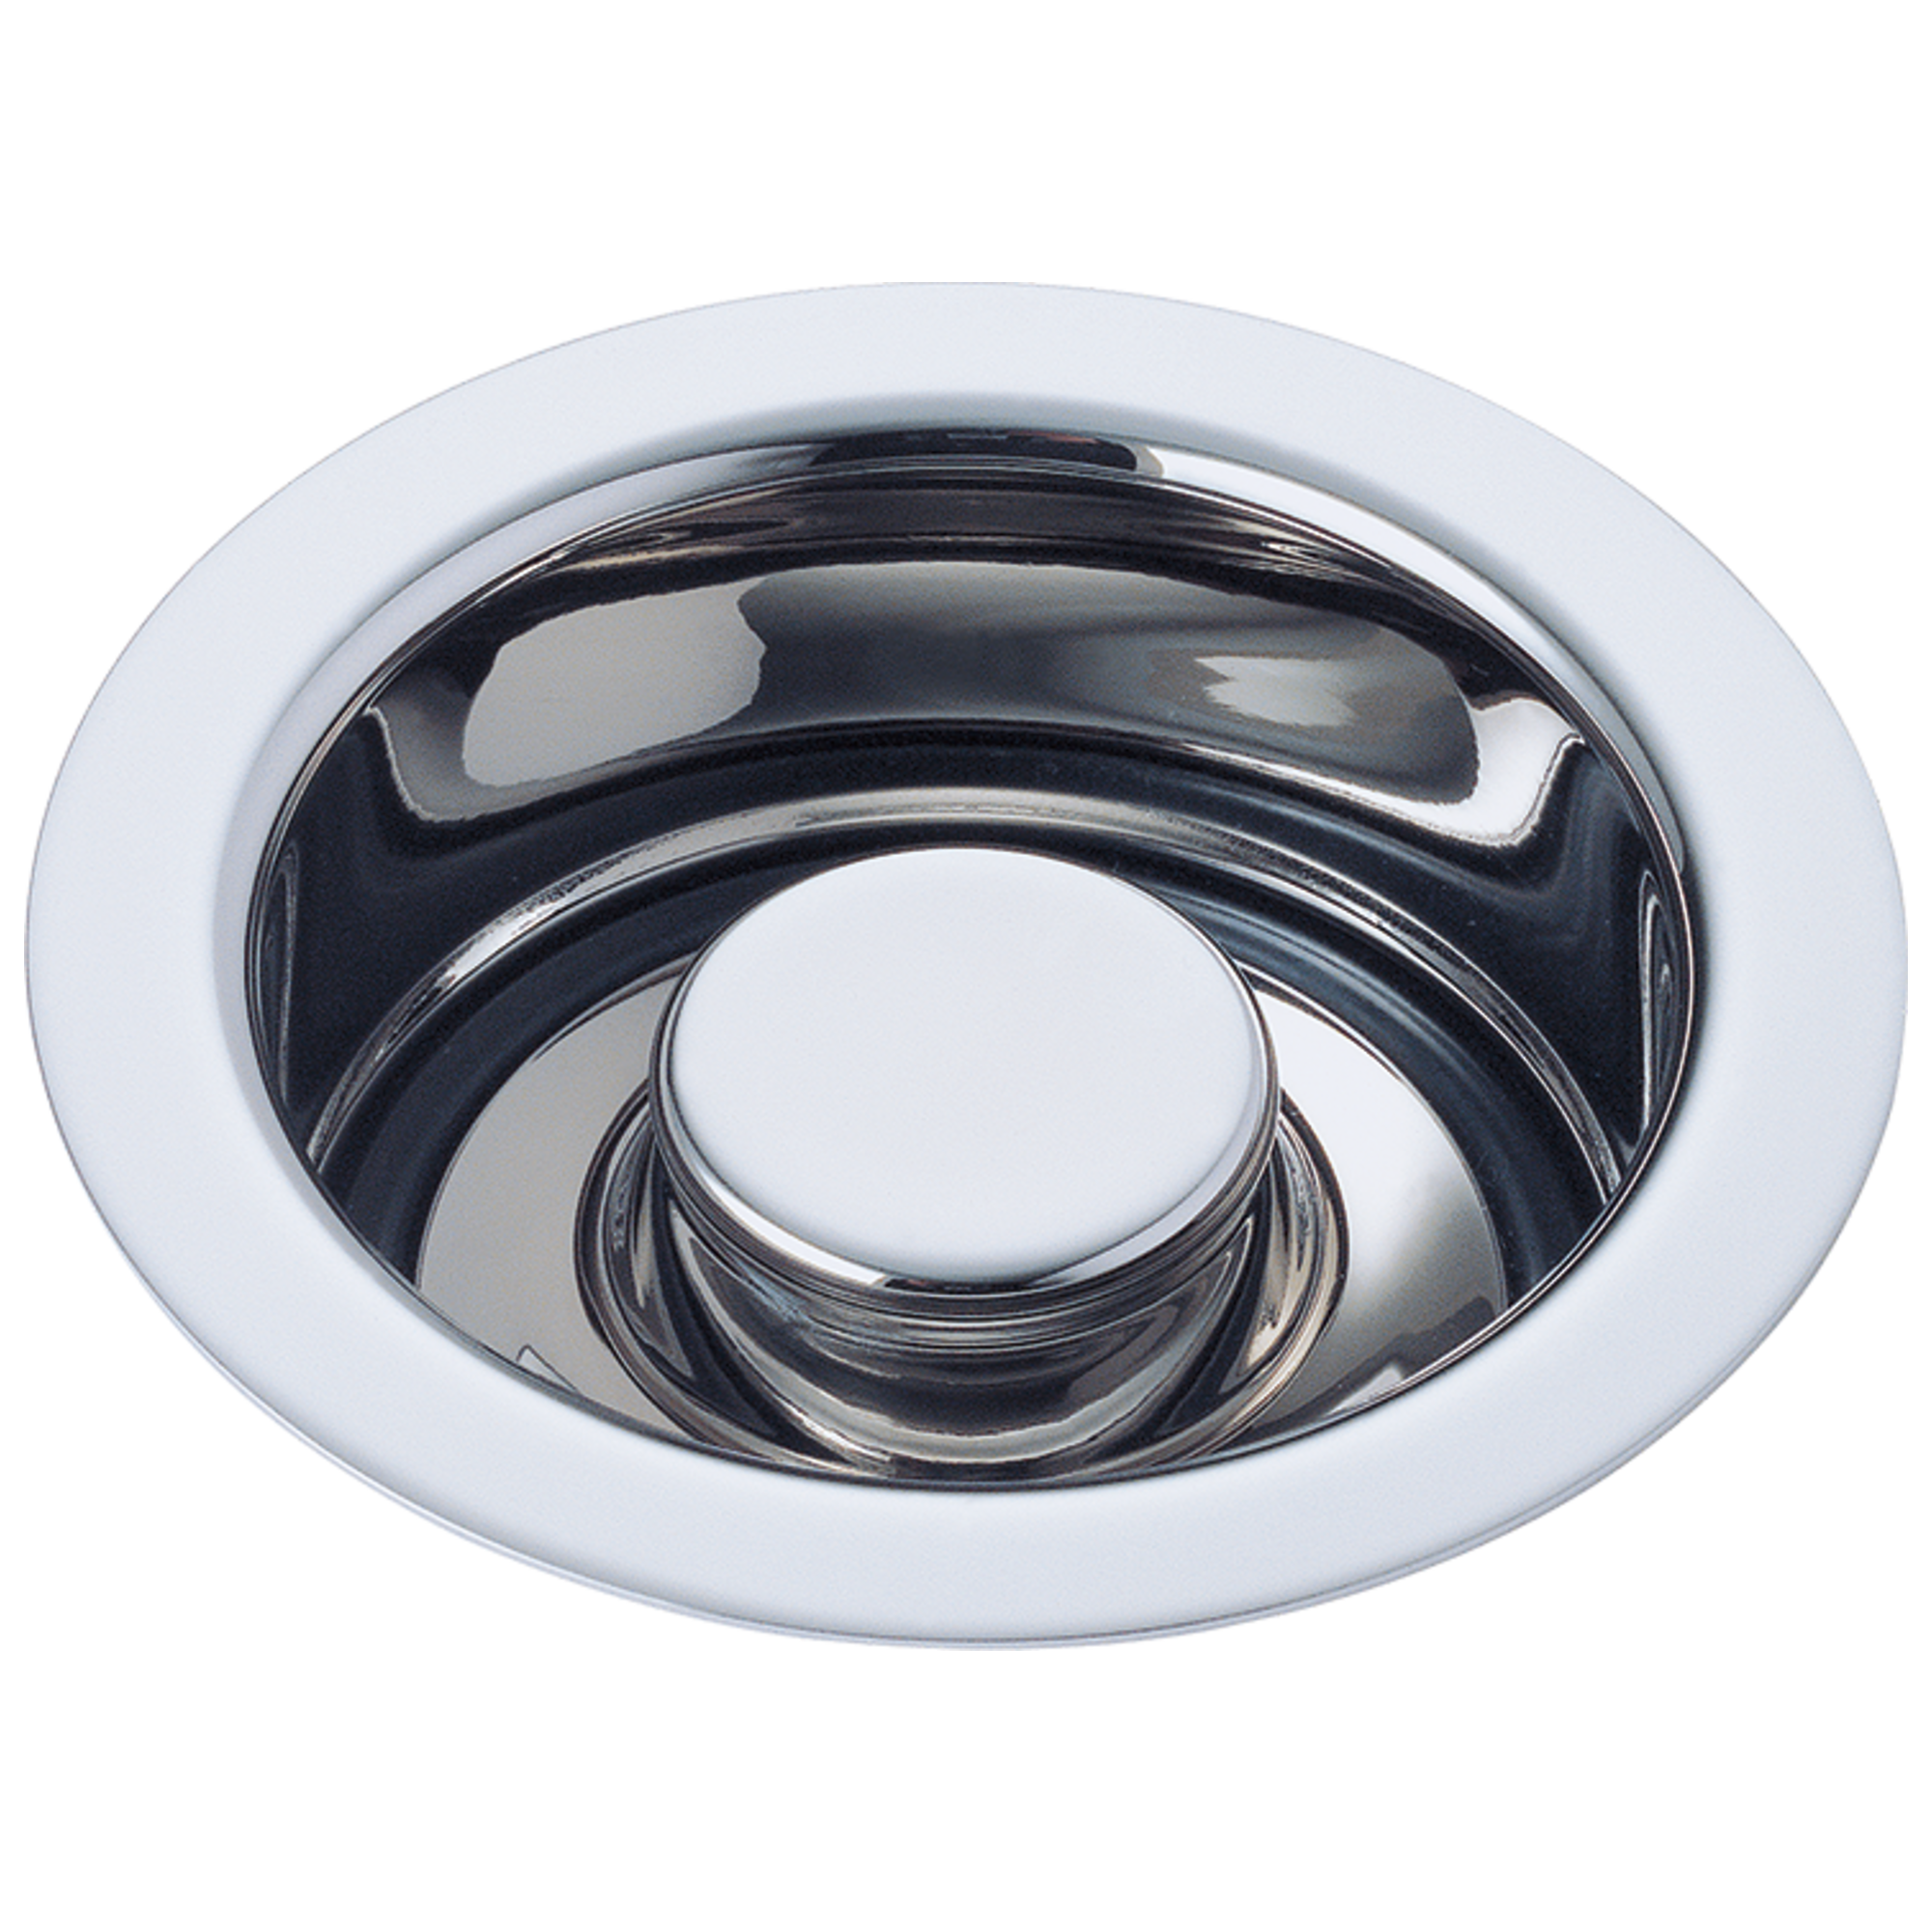 Delta 72030 Kitchen Disposal and Flange Stopper